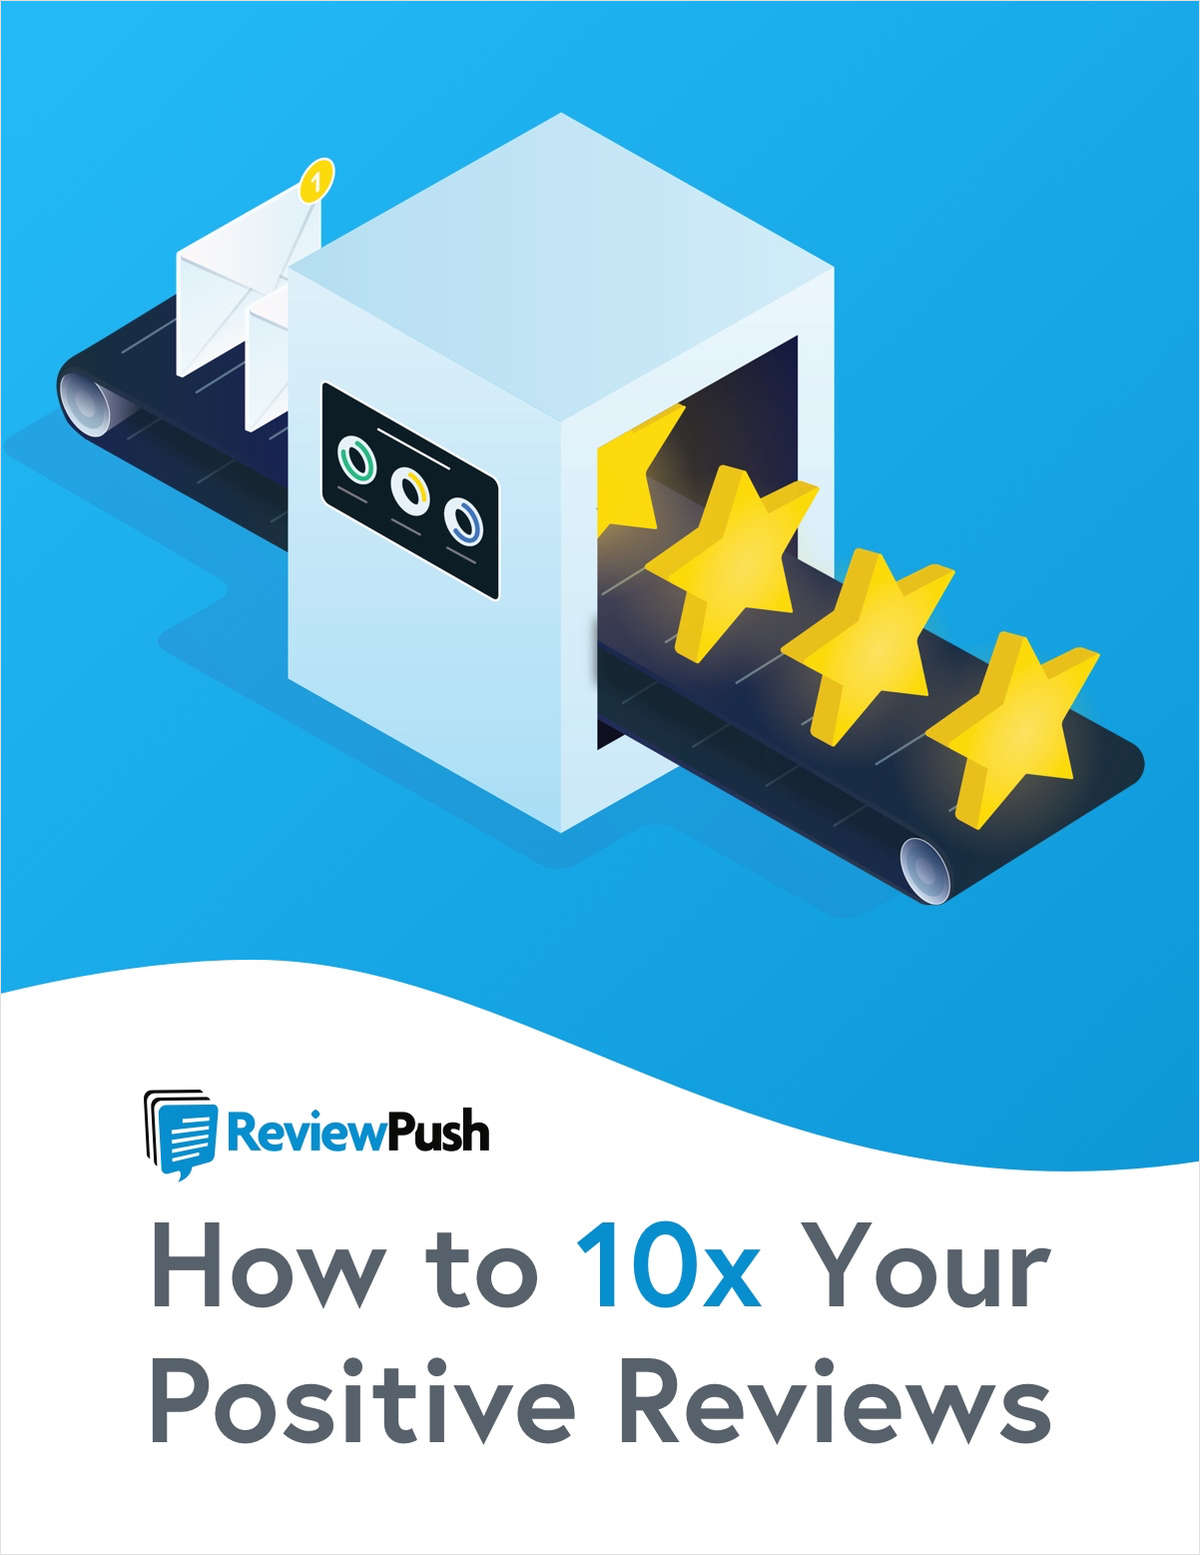 How to 10x Your Positive Reviews